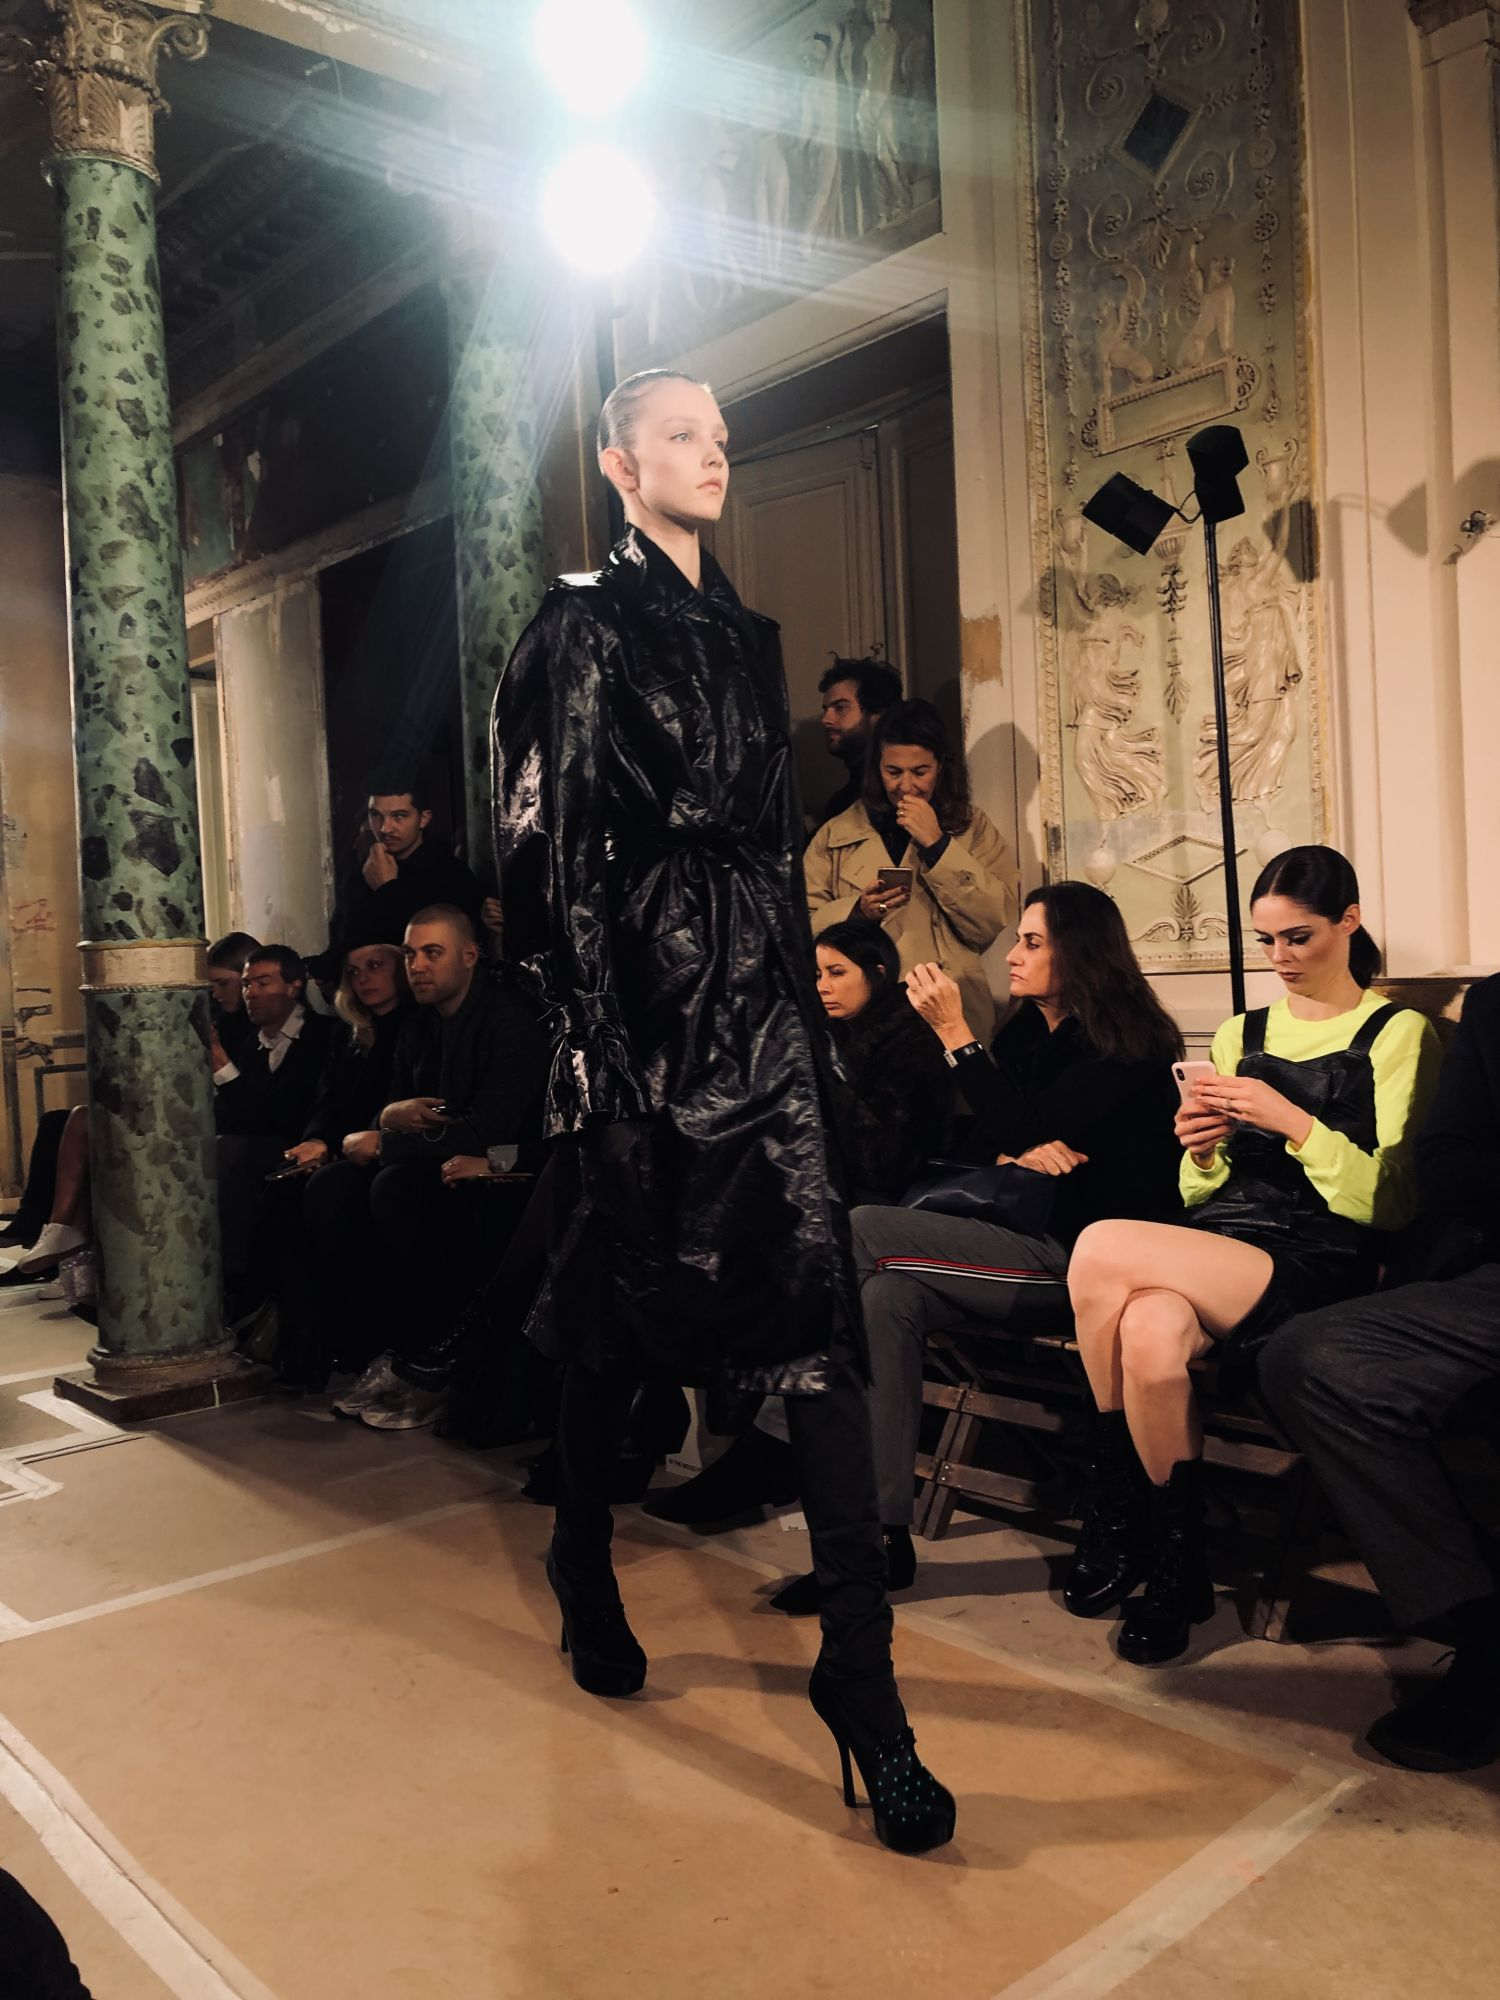 Paris Fashion Week Fall/Winter 2019: Day 4 Highlights